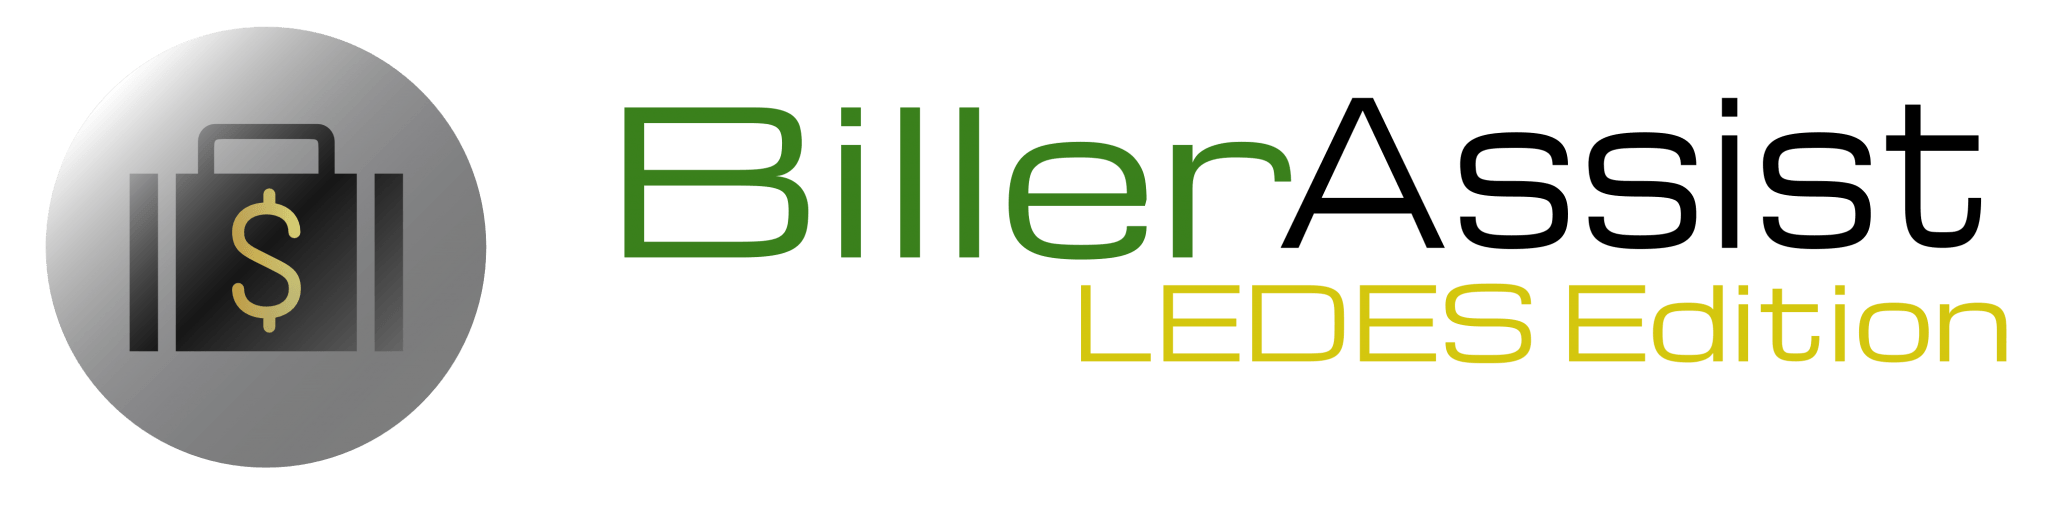 Legal Time Billing Software (Online) | BillerAssist LEDES Edition